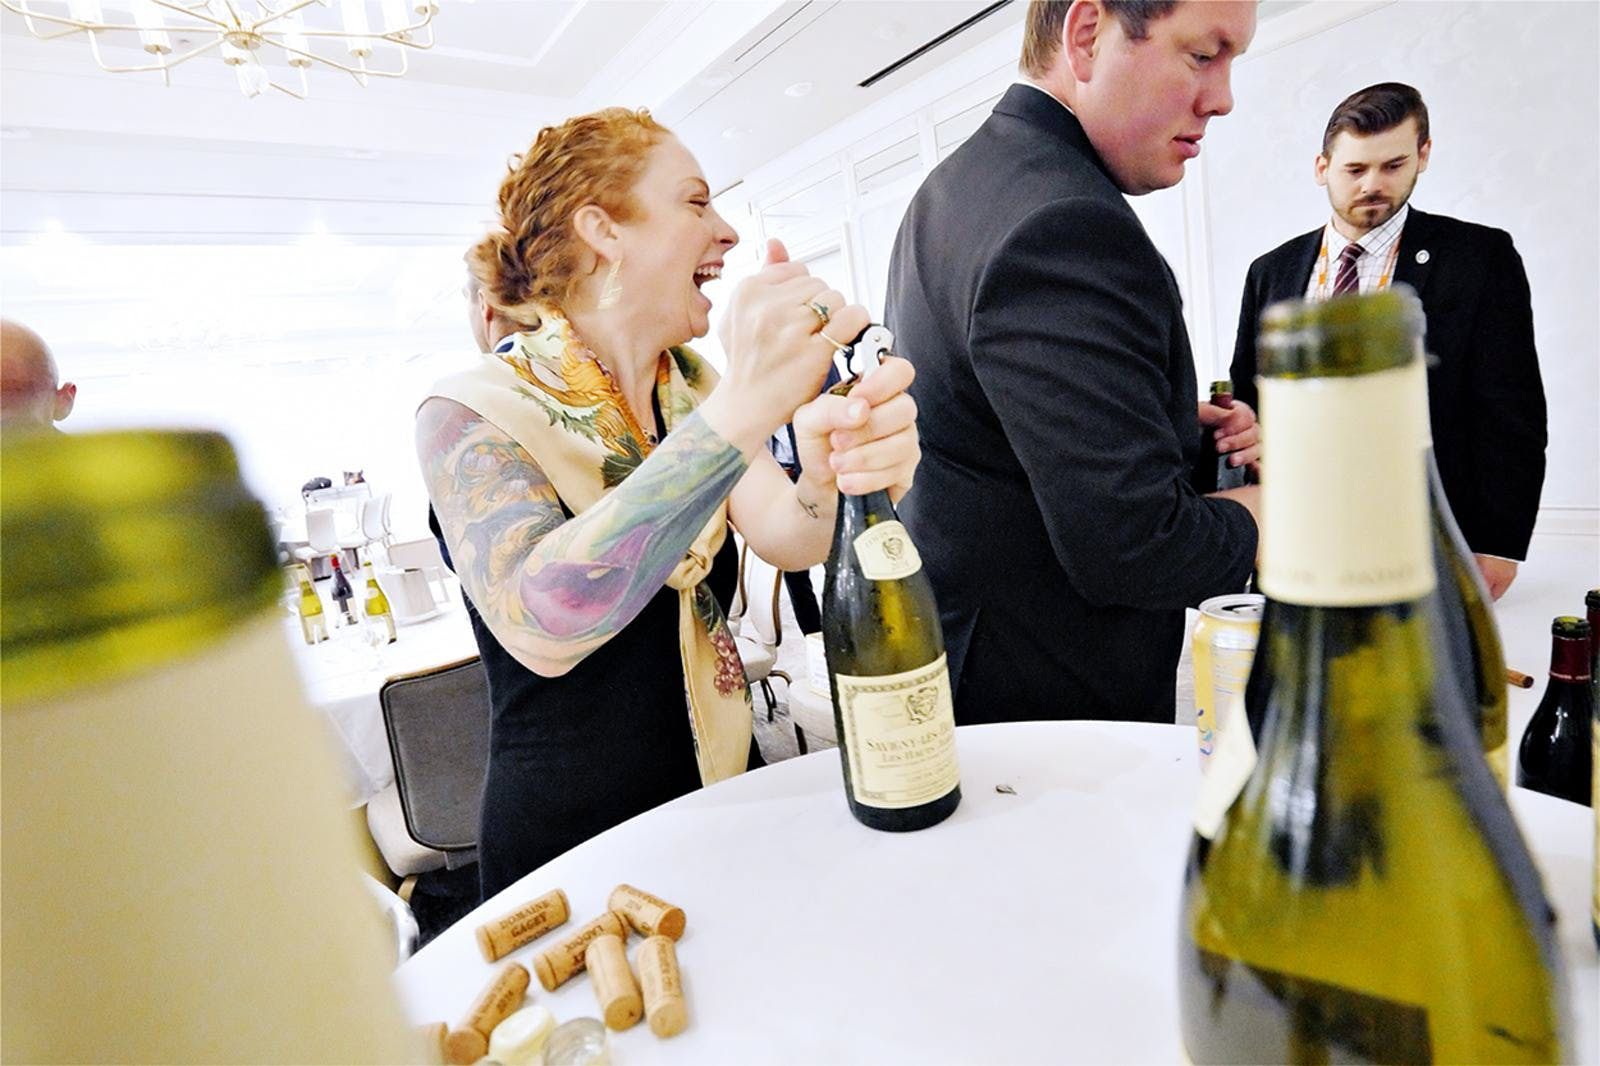 At TEXSOM, sommeliers and suppliers network as they taste wines.